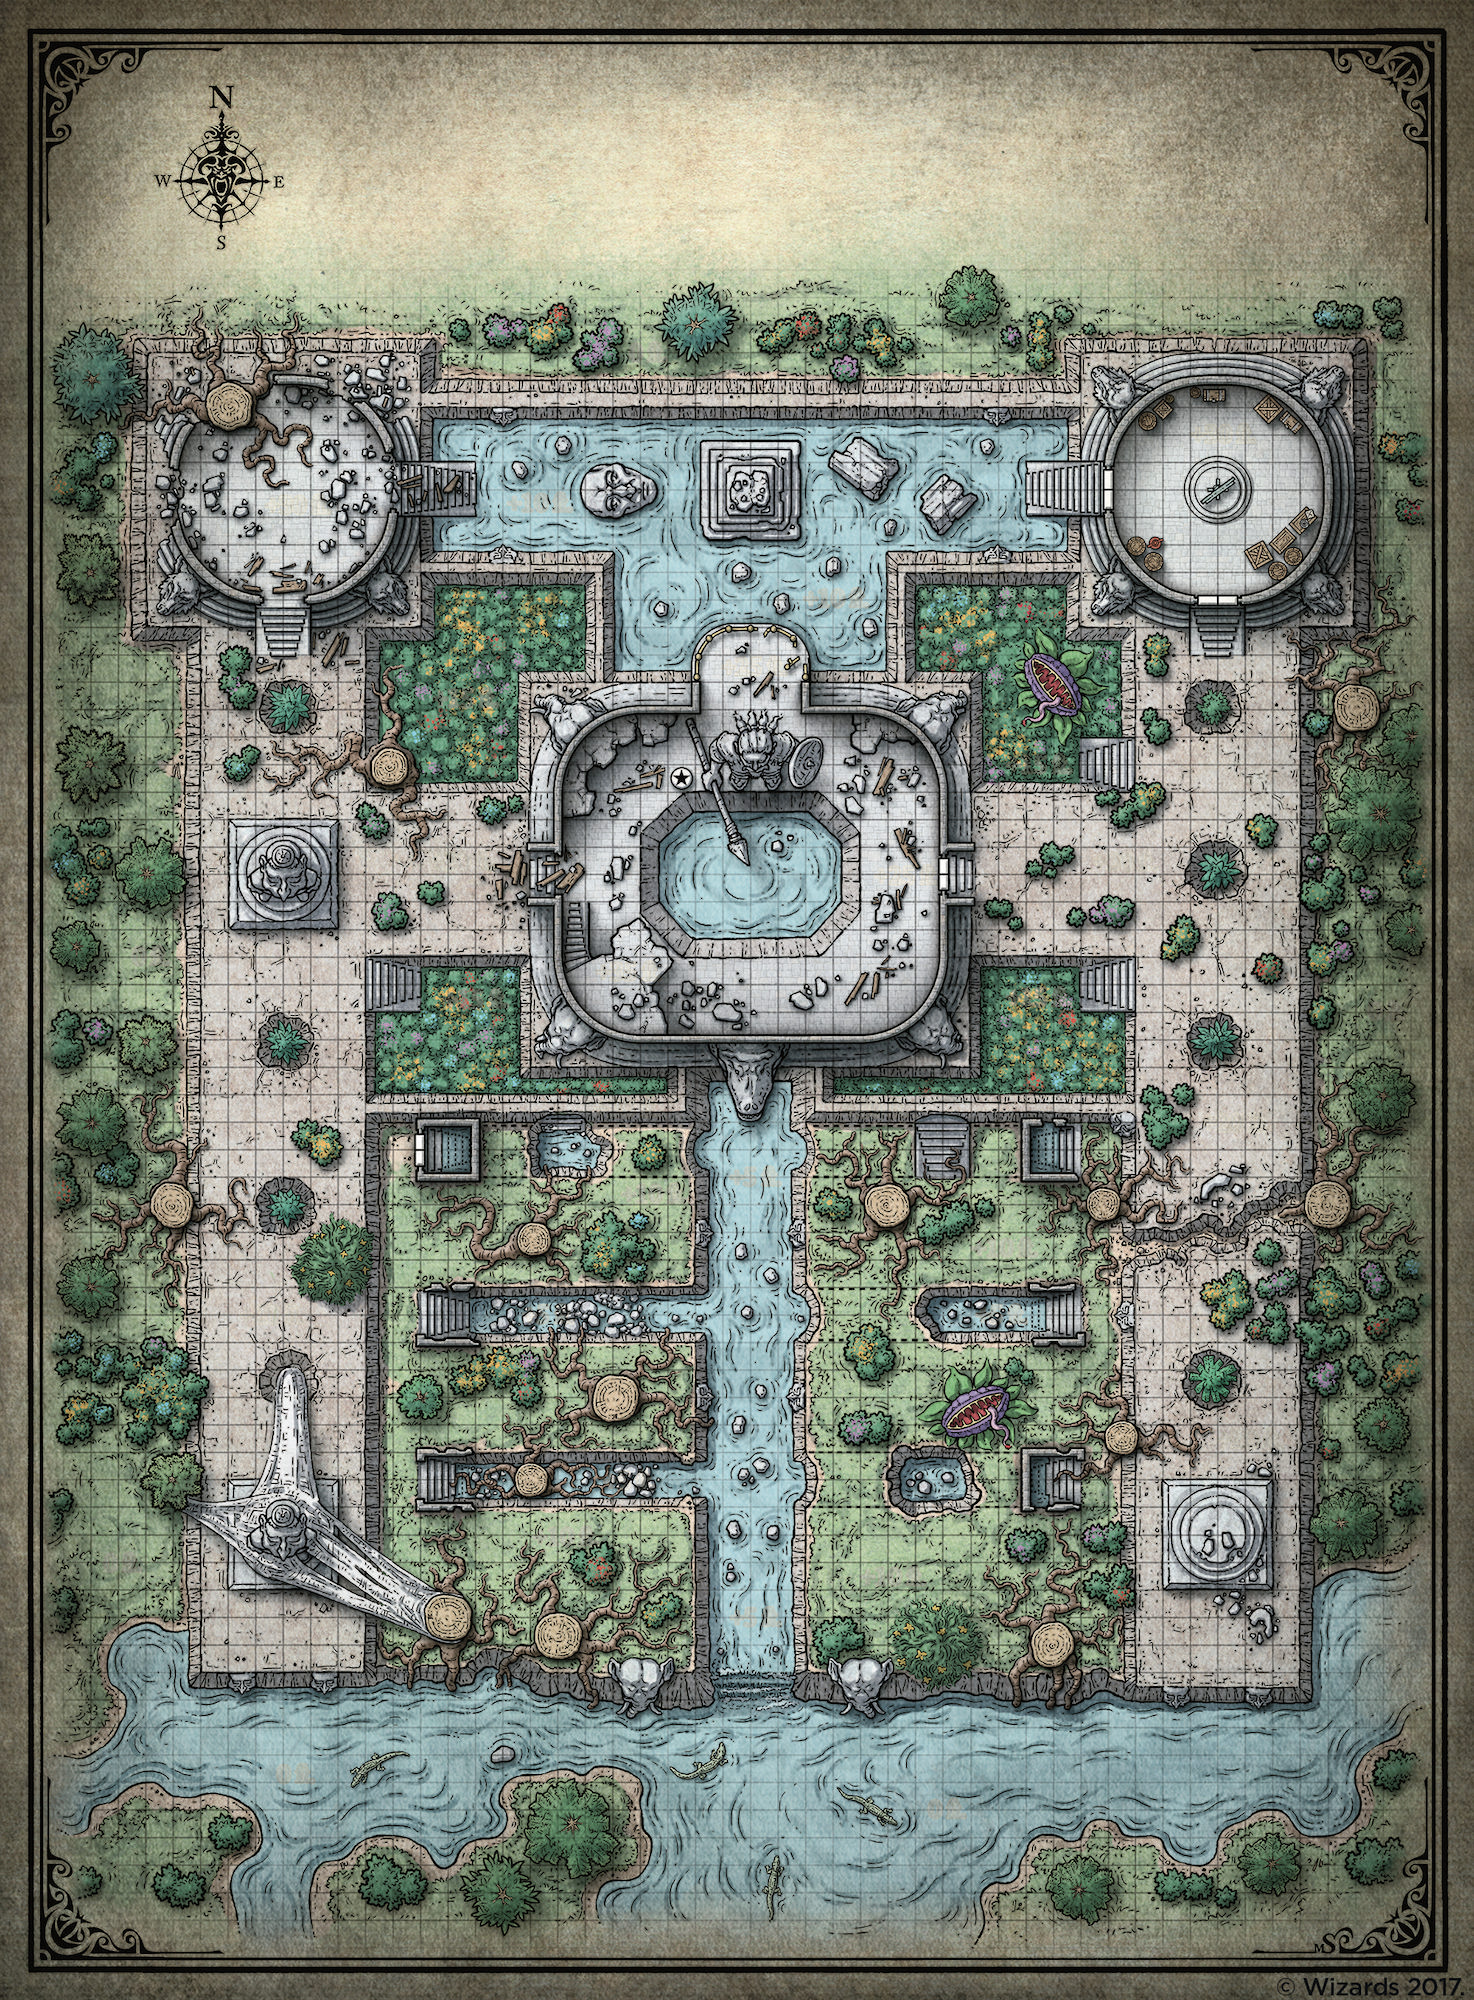 US $3.73 25% OFF|Vintage D&D Dungeons and Dragons Maps Poster Seaside on